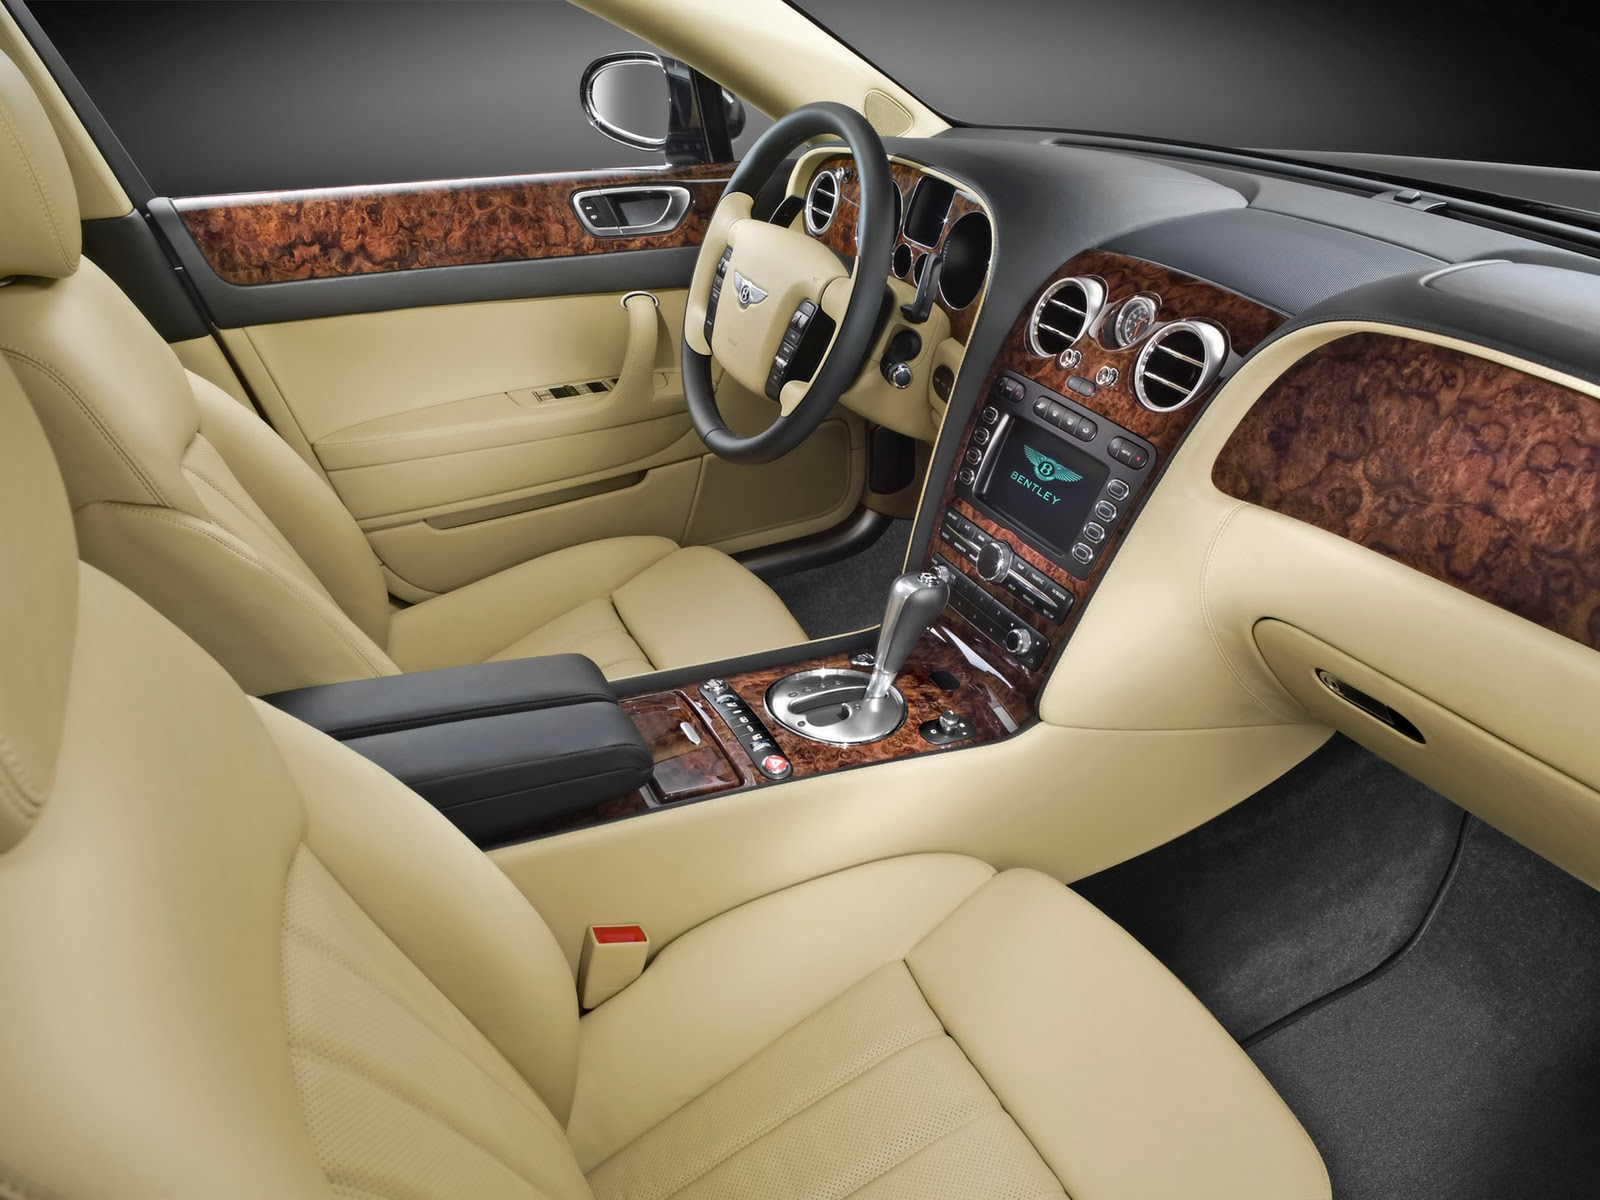 tamerlane 39 s thoughts bentley continental flying spur vw phaeton interior comparison. Black Bedroom Furniture Sets. Home Design Ideas